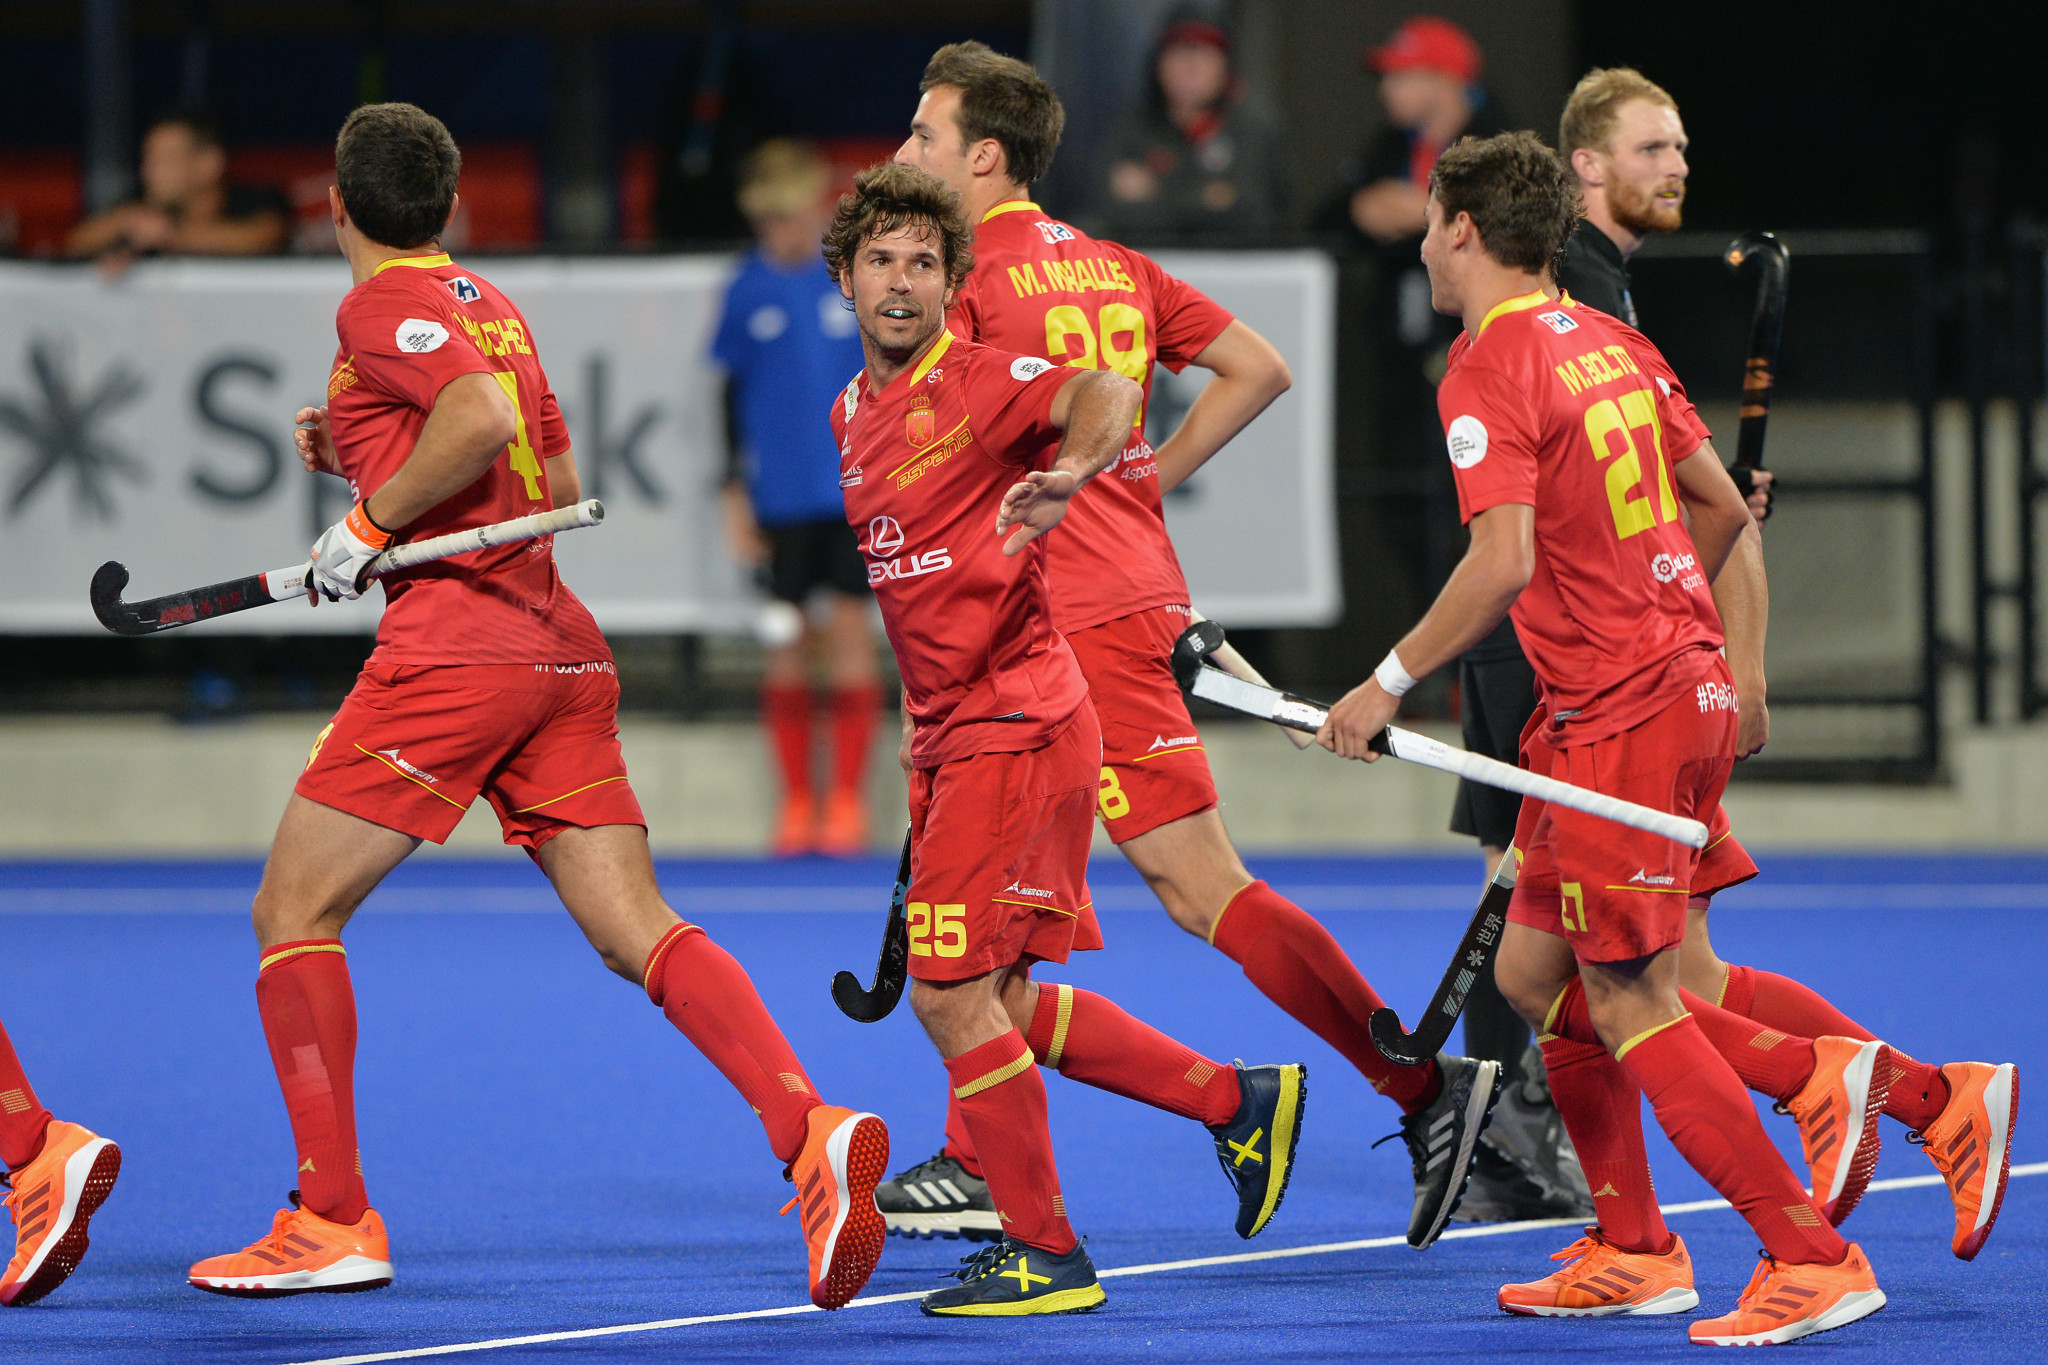 Spain beat New Zealand in men's FIH Pro League, New Zealand women beat the US